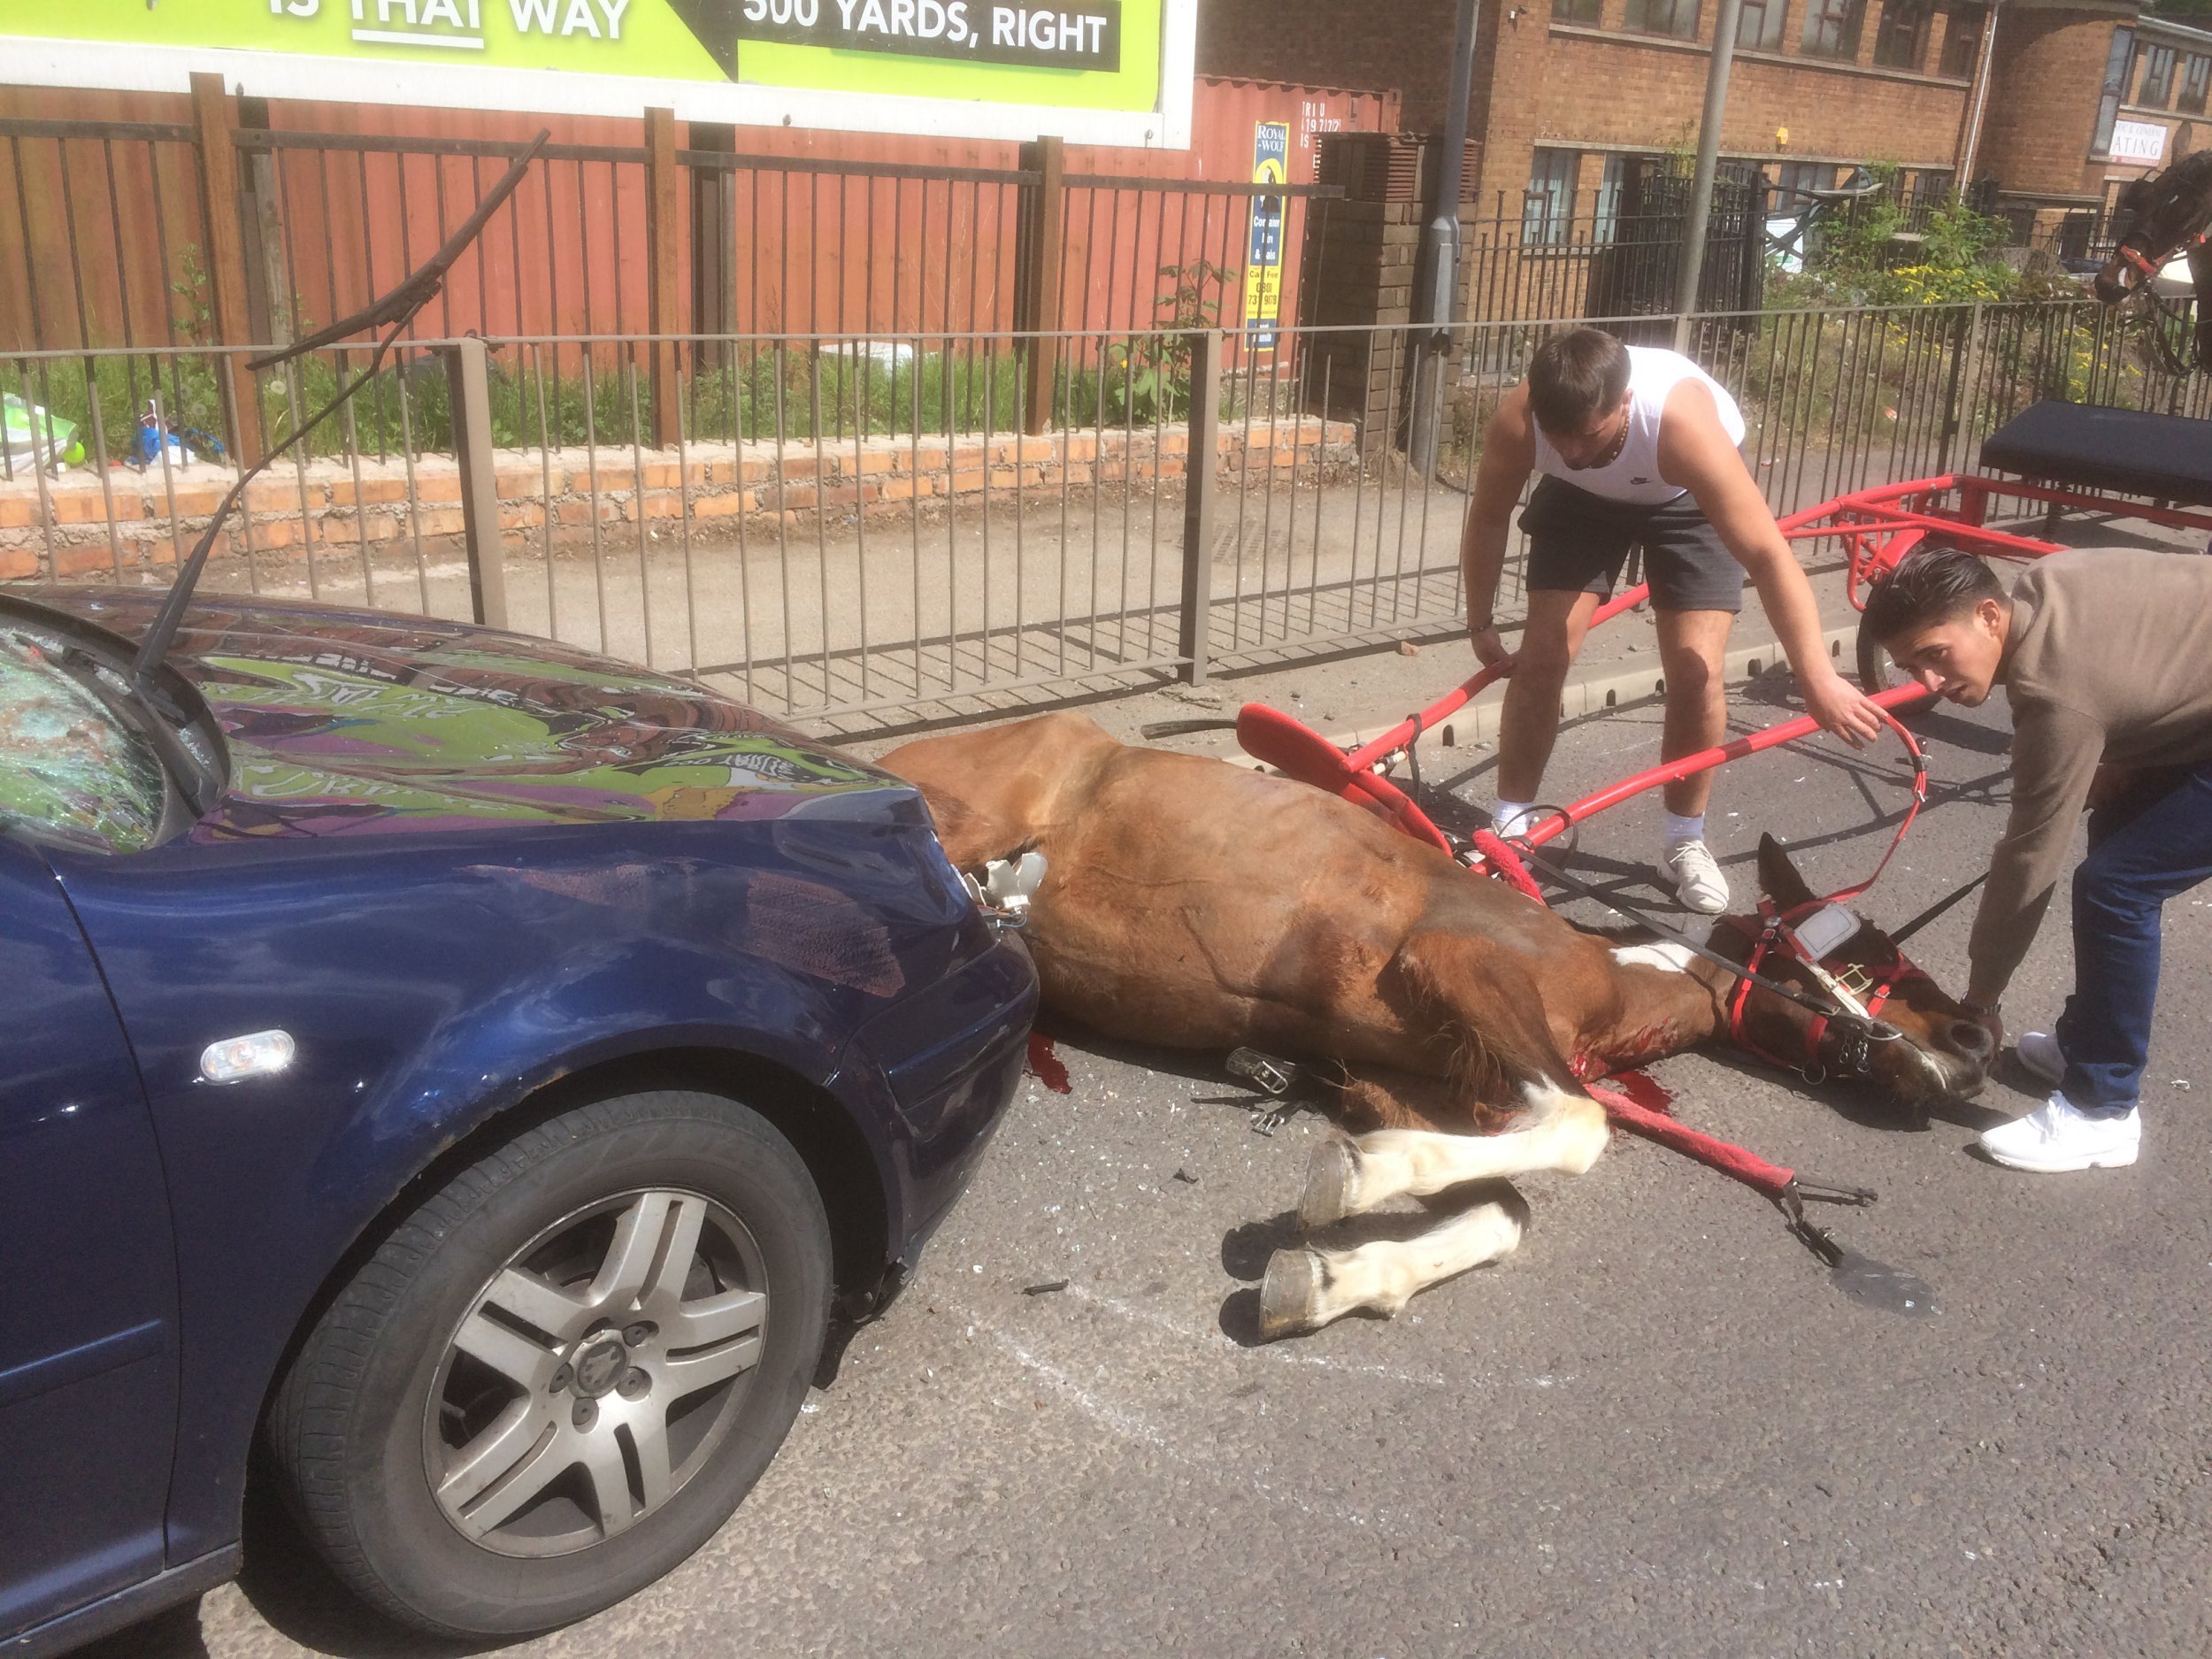 Bleeding horse dumped after crash RSPCA appeals for information as horse abandoned after being hit by car The RSPCA is appealing for information after a horse was abandoned by the men with her after she crashed into a car. Bleeding horse dumped after crash RSPCA appeals for information as horse abandoned after being hit by car The RSPCA is appealing for information after a horse was abandoned by the men with her after she crashed into a car. The horse was part of a procession in Great Bridge Road in Bilston on Sunday (May 13) with lots of traditional horse-drawn carriages. Unfortunately, one of the horses bolted and collided head-on with a car. The impact smashed the windscreen of an oncoming vehicle and left the mare lying in the road and bleeding profusely. RSPCA Inspector Vicki Taylor, who was on the scene alongside police, said: ???The horse was lying in the road and bleeding where the smashed windscreen had cut into her front and legs. This was a shocking sight and she was clearly suffering. ???Thankfully the family who were in the car were uninjured but their vehicle was badly damaged. ???When I arrived, the men with the horse had already left, dragging the trap away with them. Witnesses provided photos of the owners taking off the trap and leaving the horse in the road. It must have been a shock to be involved in an accident like this but these men essentially abandoned this horse to die. ???As they left, the two men were pictured trying to hide their faces. We are now appealing for anyone who may recognise the horse, or the men in these images, to contact us in strictest confidence on the inspectorate appeal line on 0300 123 8018.??? The mare, who is about seven years old, is also underweight but is now recovering at a private boarding establishment in RSPCA care. Insp Taylor added: ???Thankfully there are no obvious broken bones and the equine vet is positive she will recover despite the open wounds which may take a